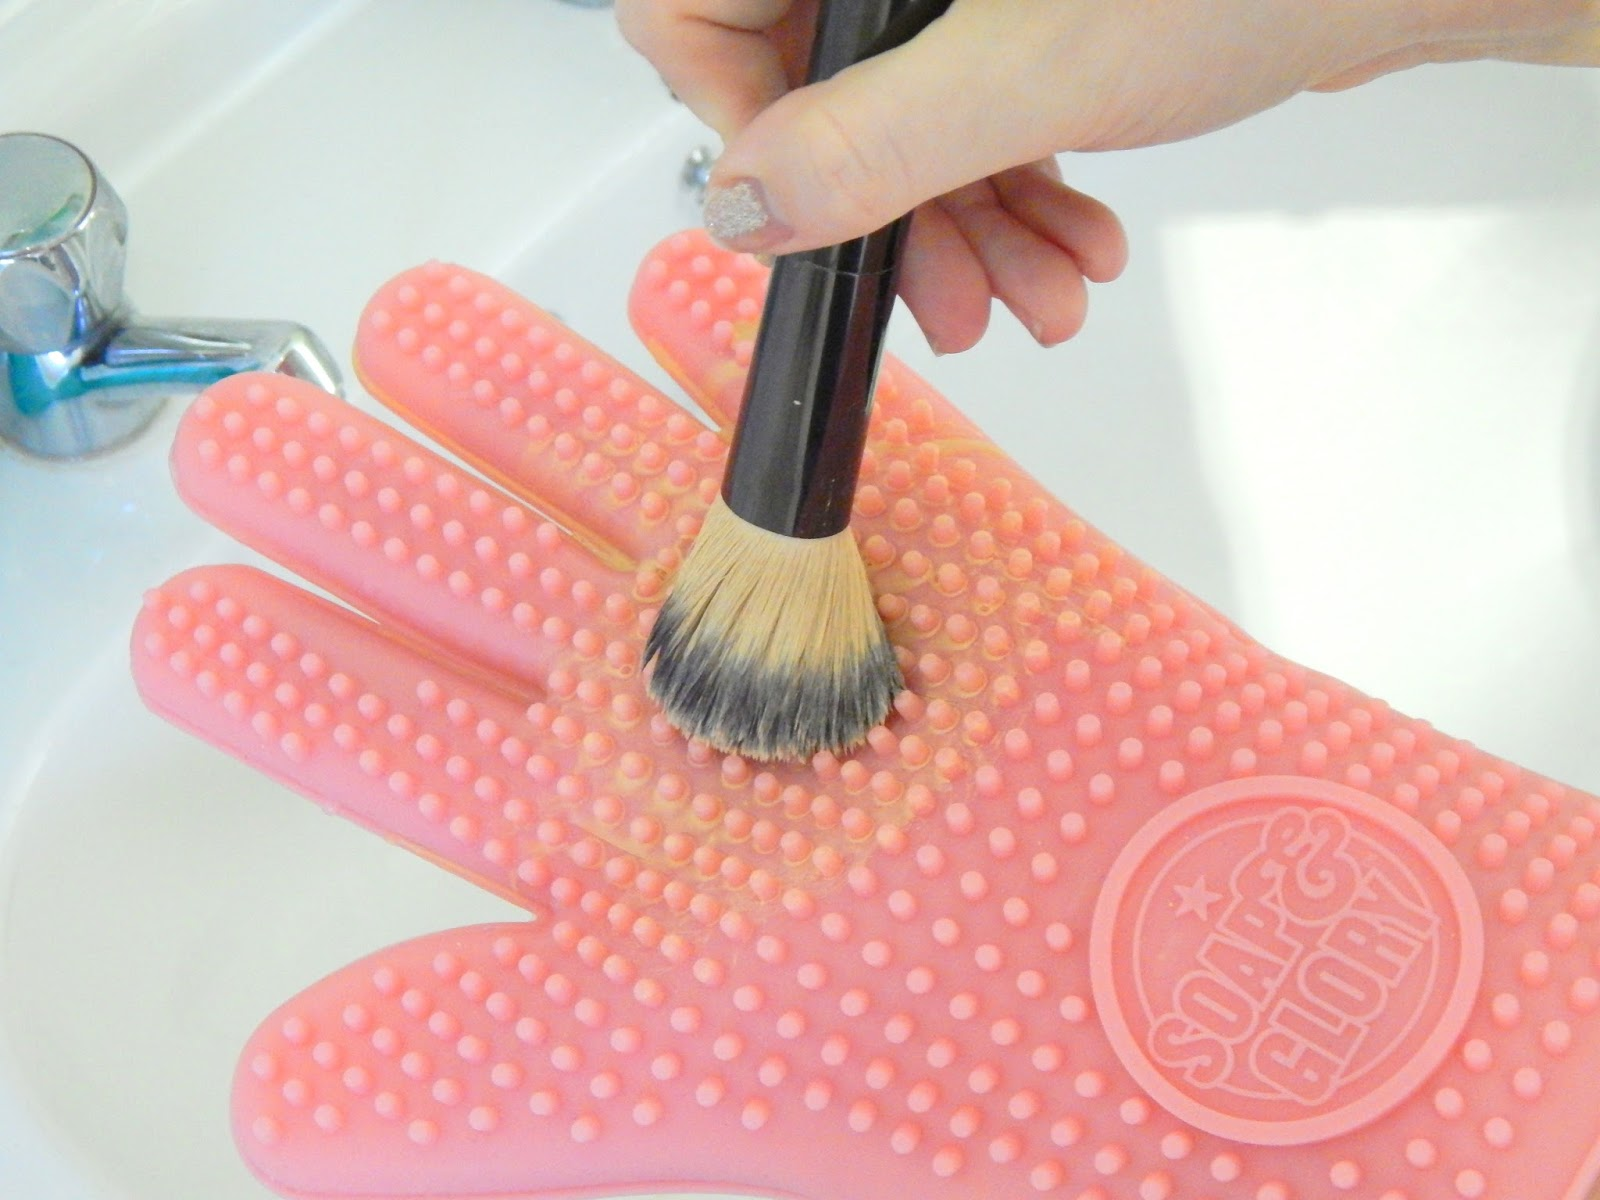 Baby Shampoo, Soap & Glory massage mit and brushes to clean